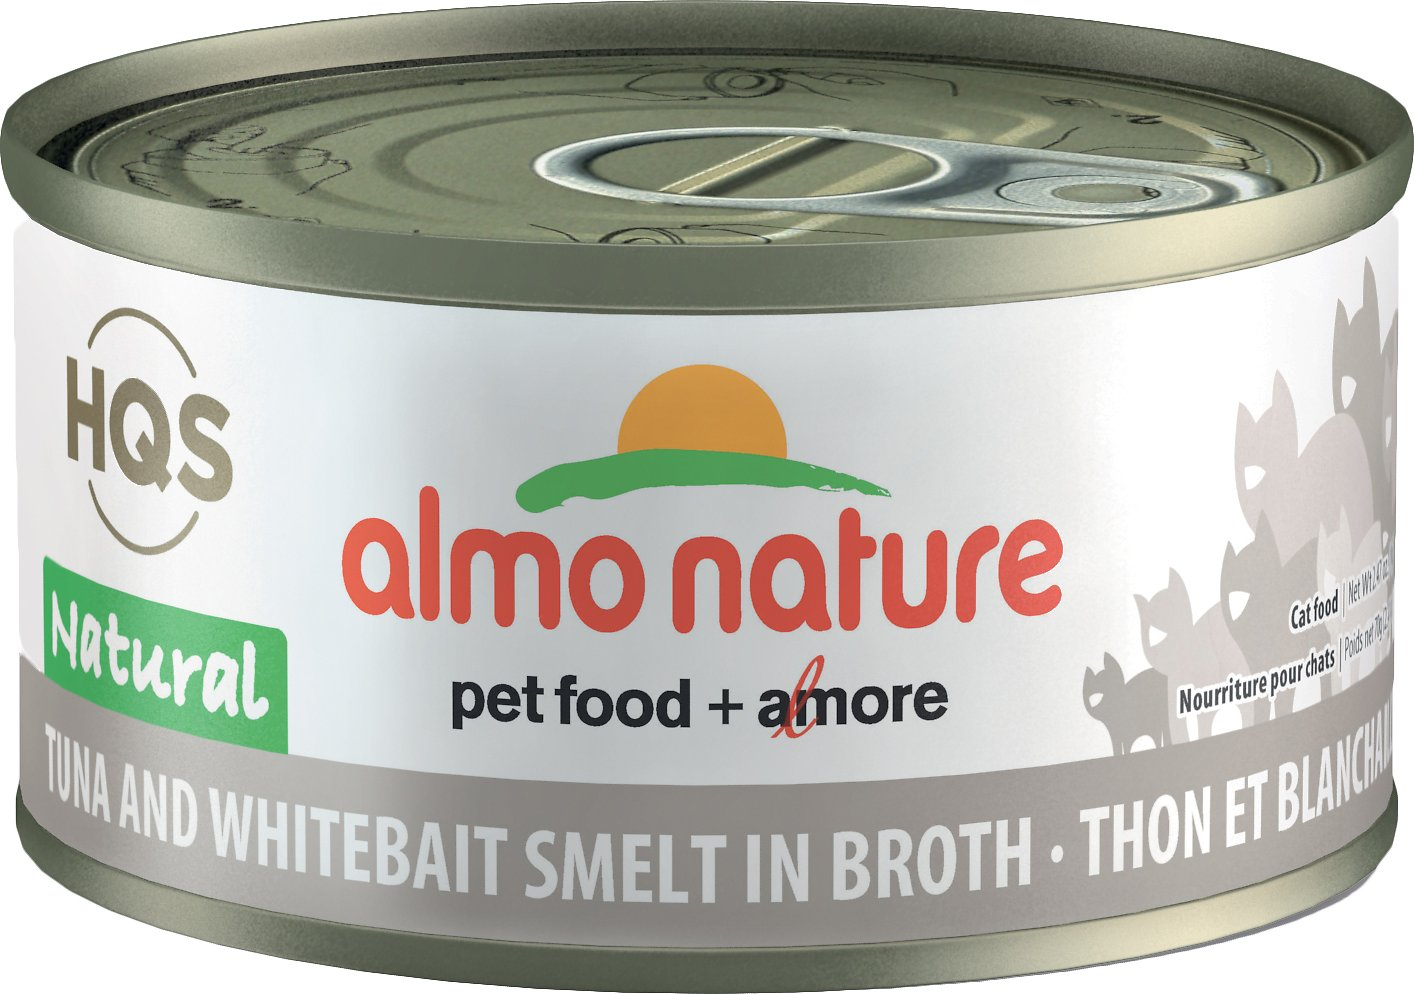 Almo Nature Tuna & Whitebait Smelt in Broth Canned Cat Food (70g/2.5oz)